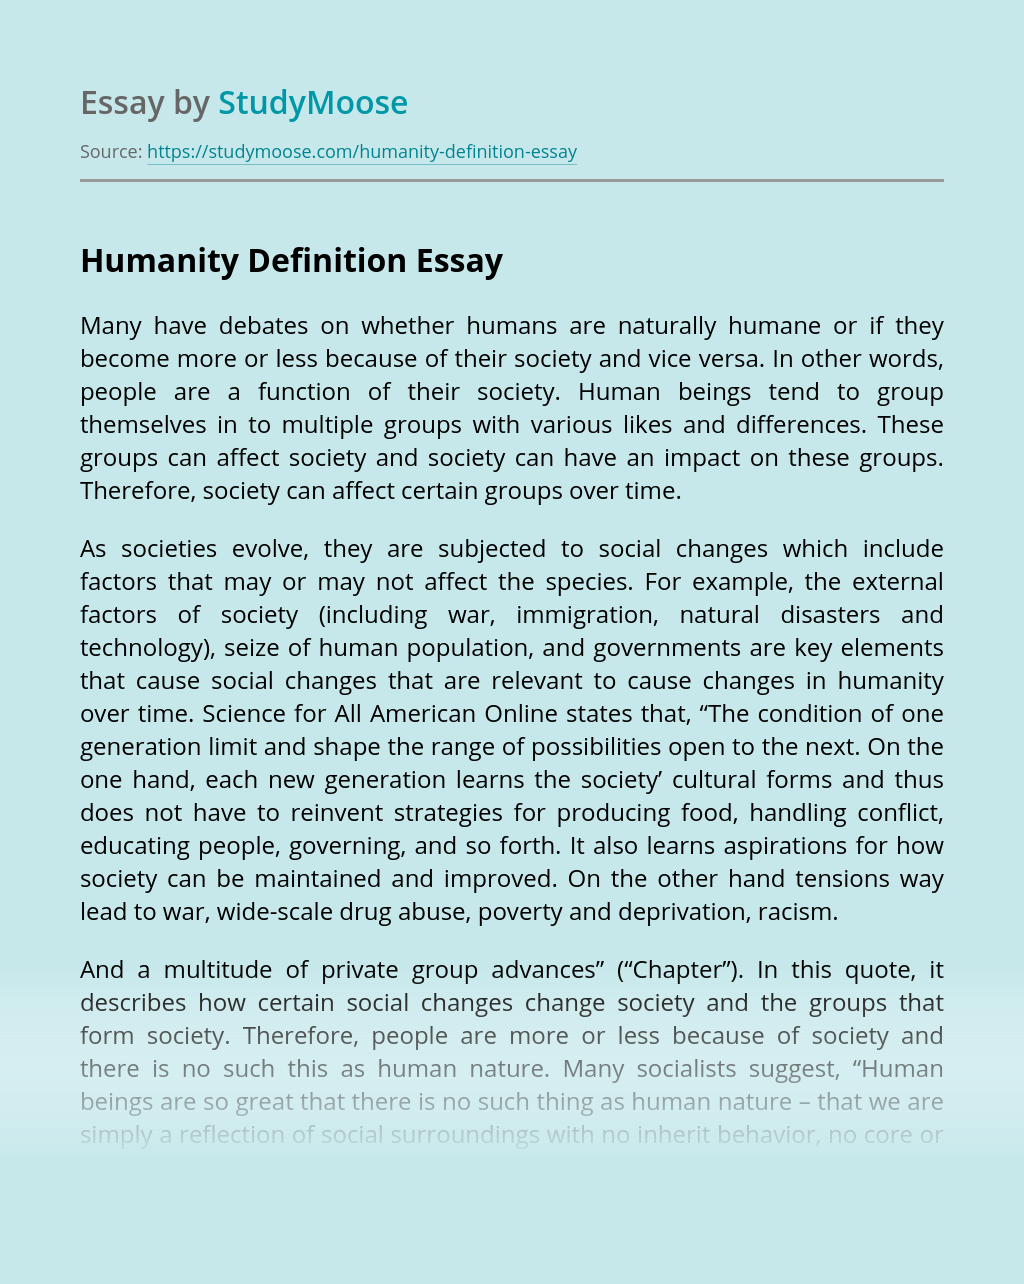 Humanity Definition